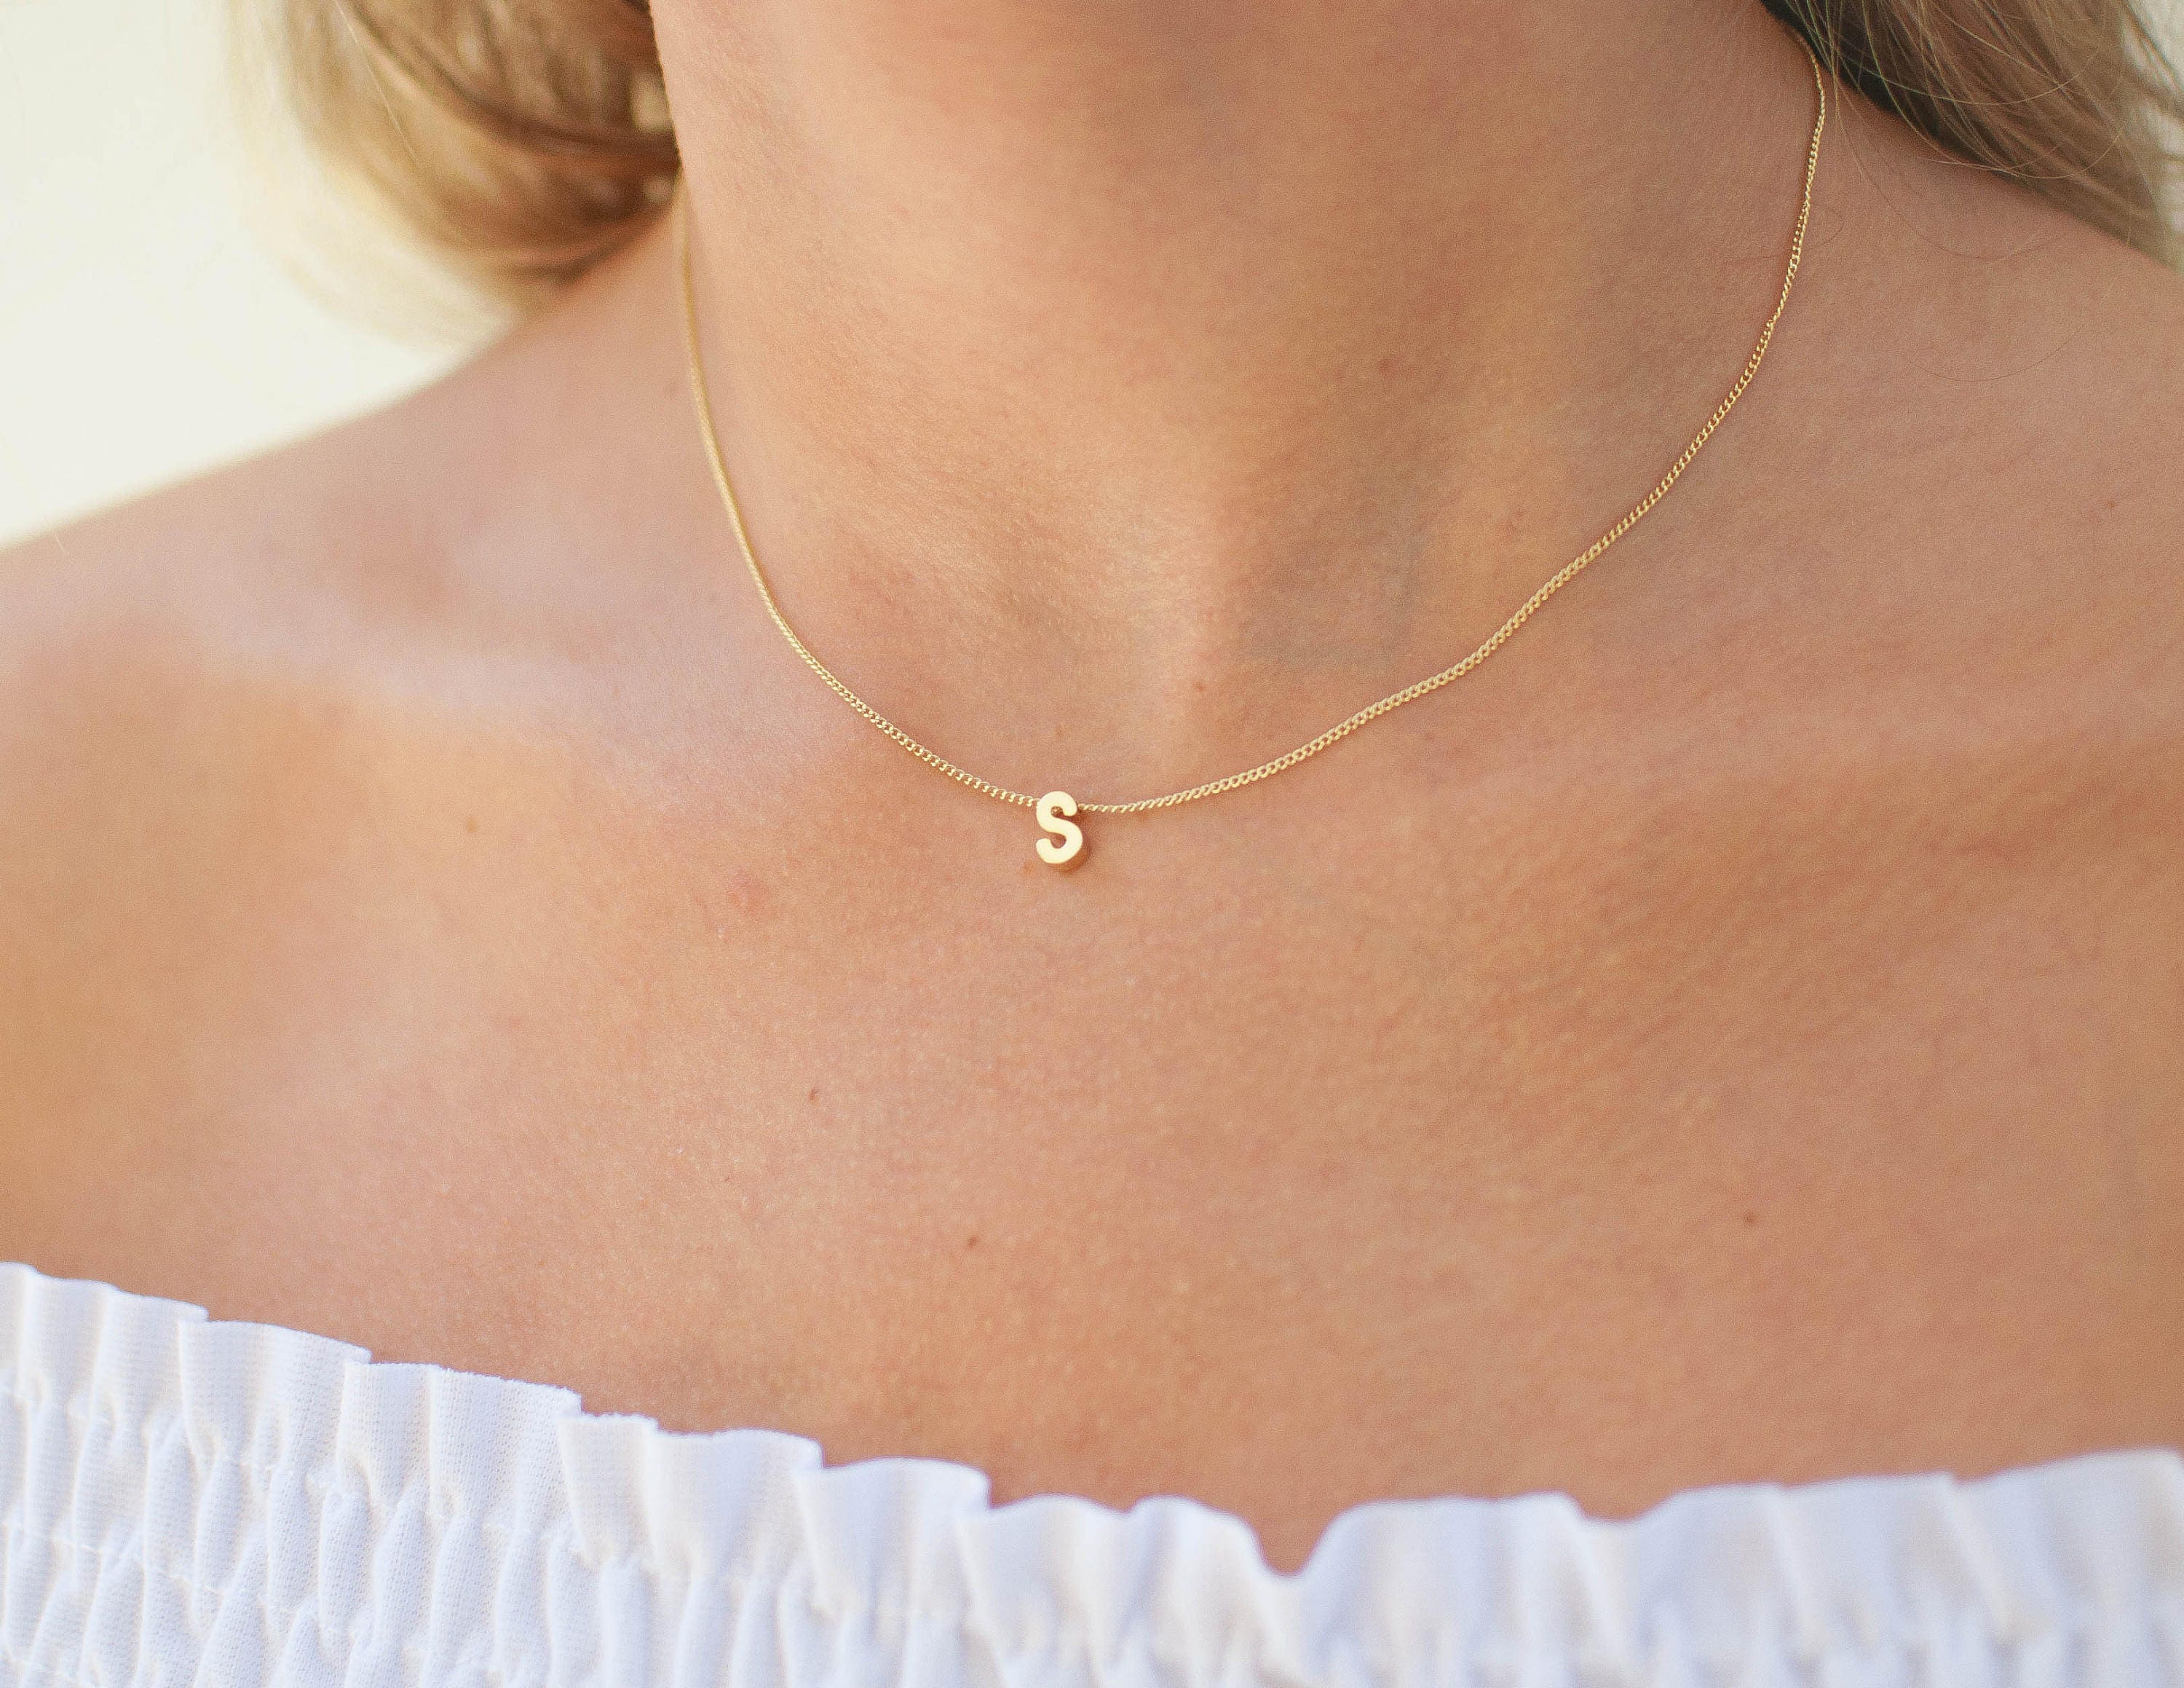 7d1f4636b7f1 Gold Initial Necklace Minimal Initial Necklace Tiny